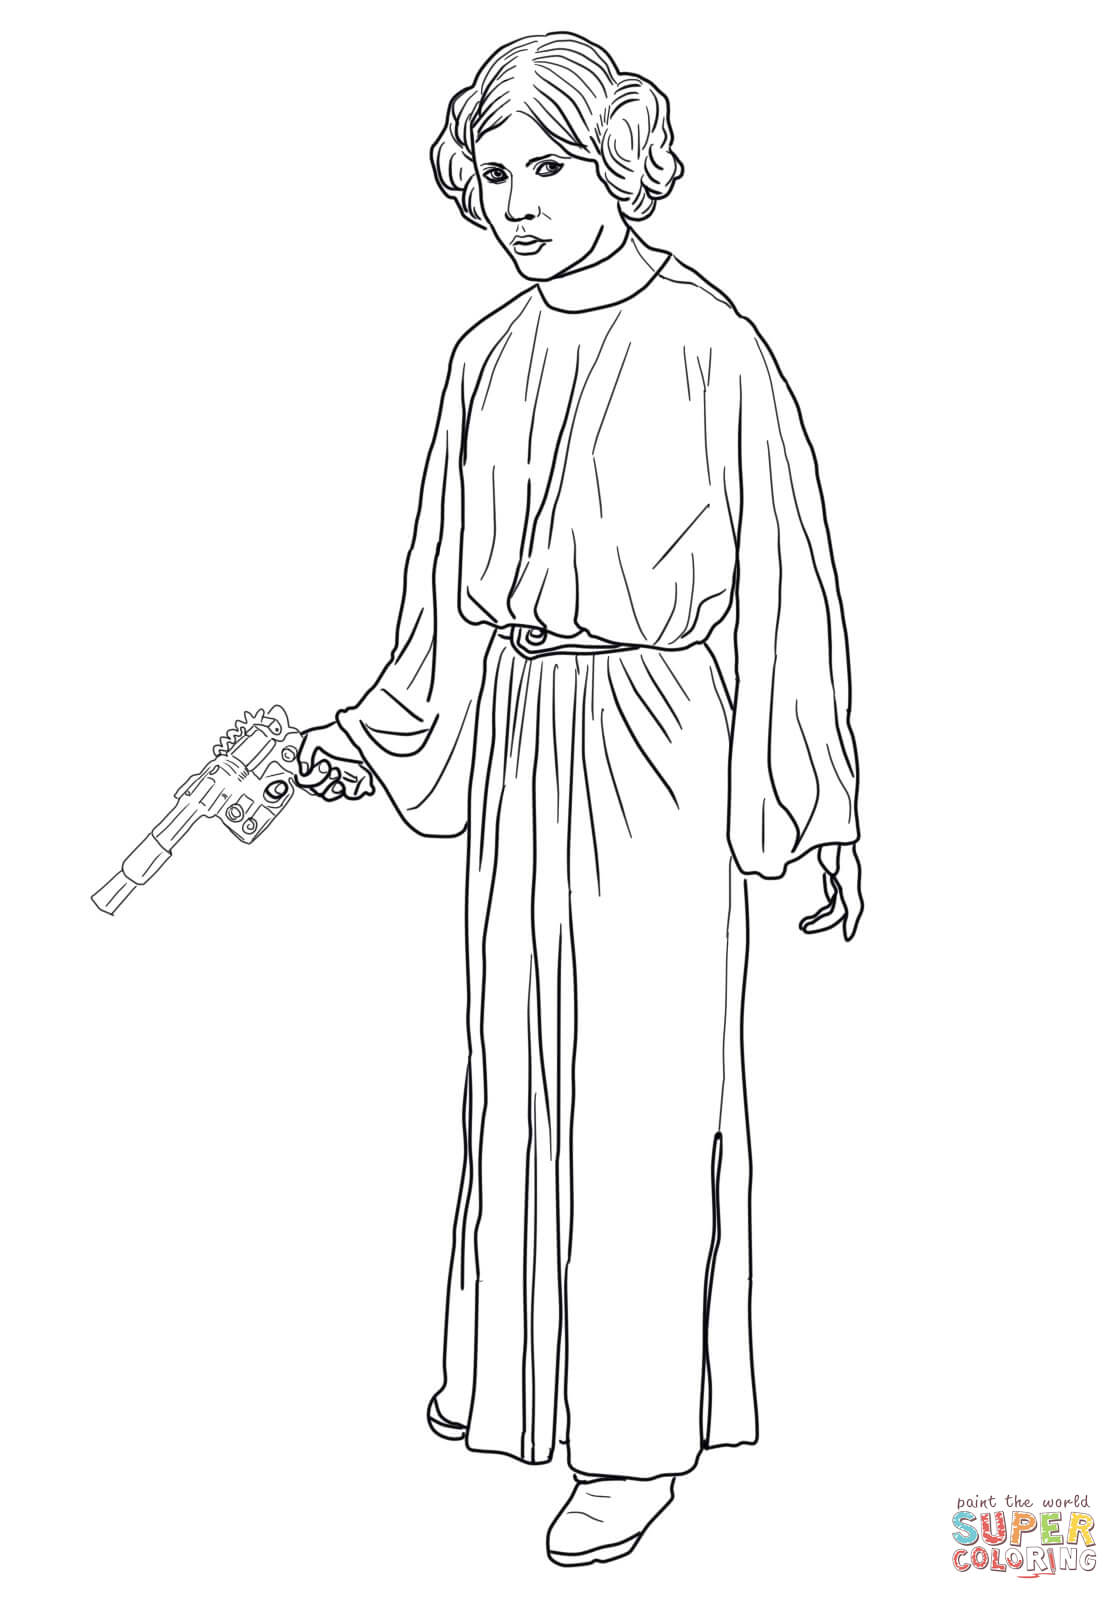 free star wars coloring pages coloring pages star wars free printable coloring pages star free coloring wars pages